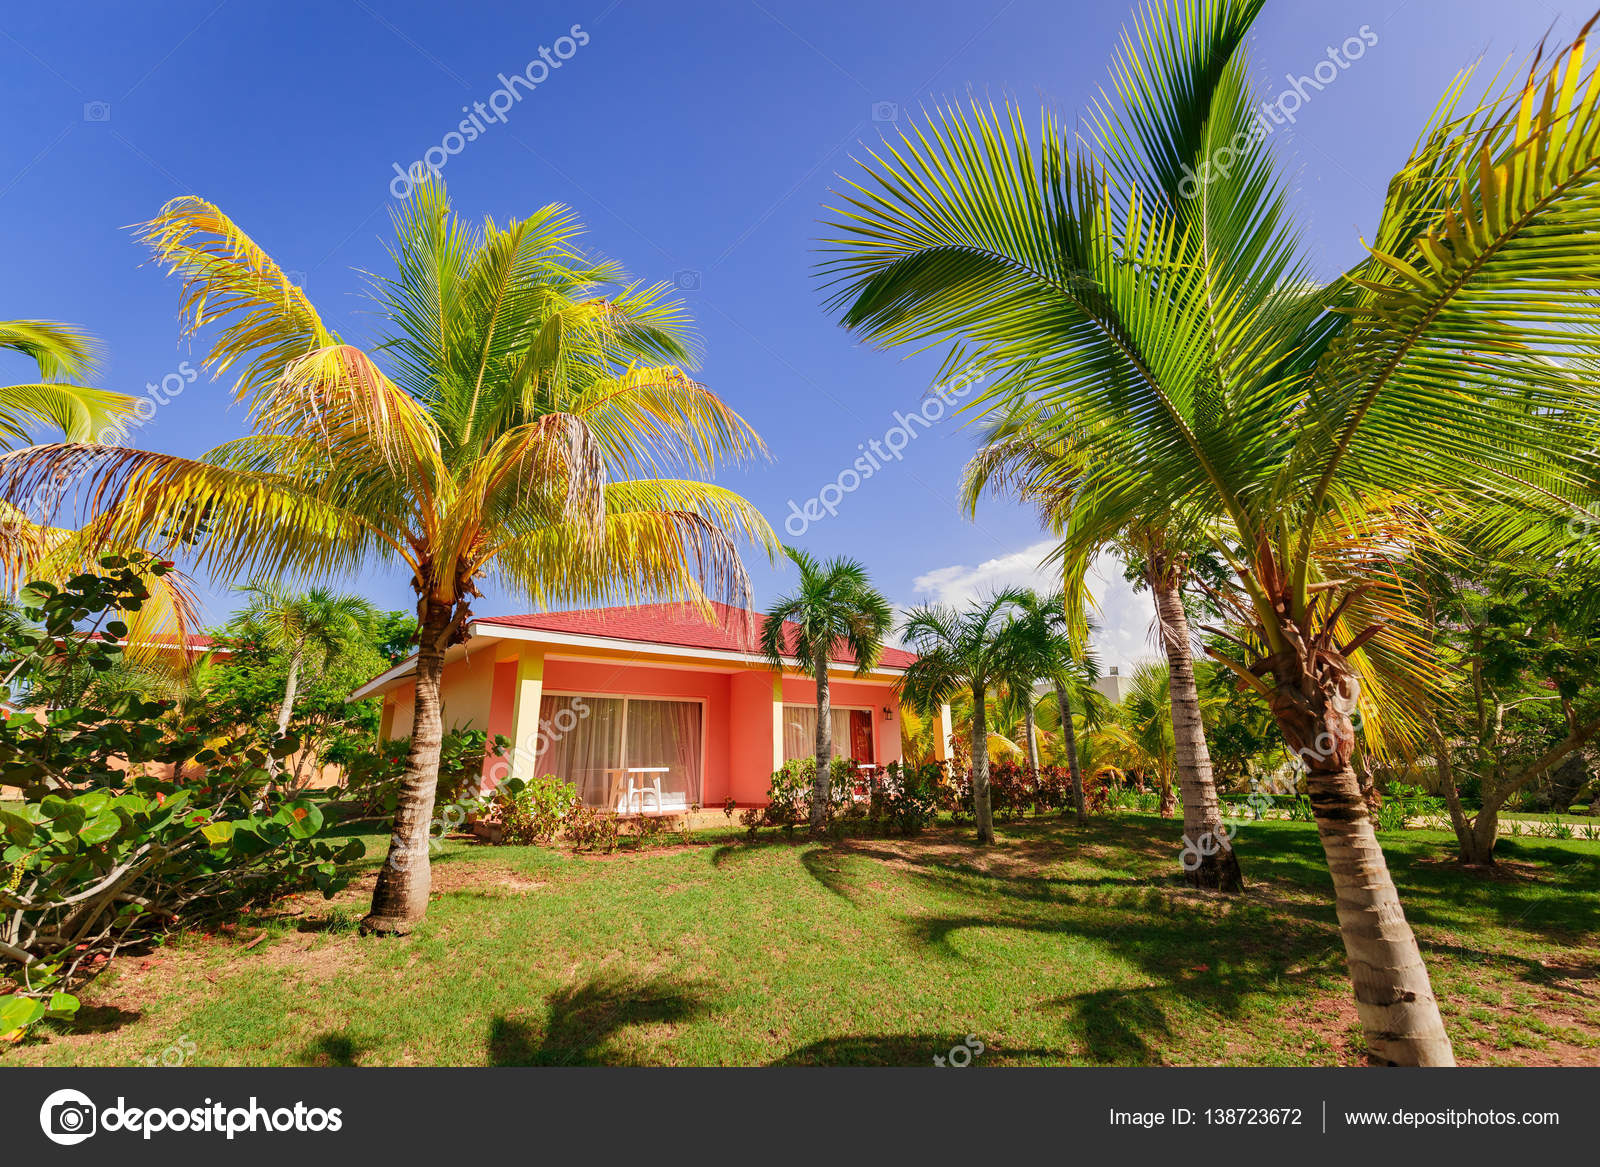 Vue Splendide Resort Bungalow Maison Debout Dans Un Jardin Tropical